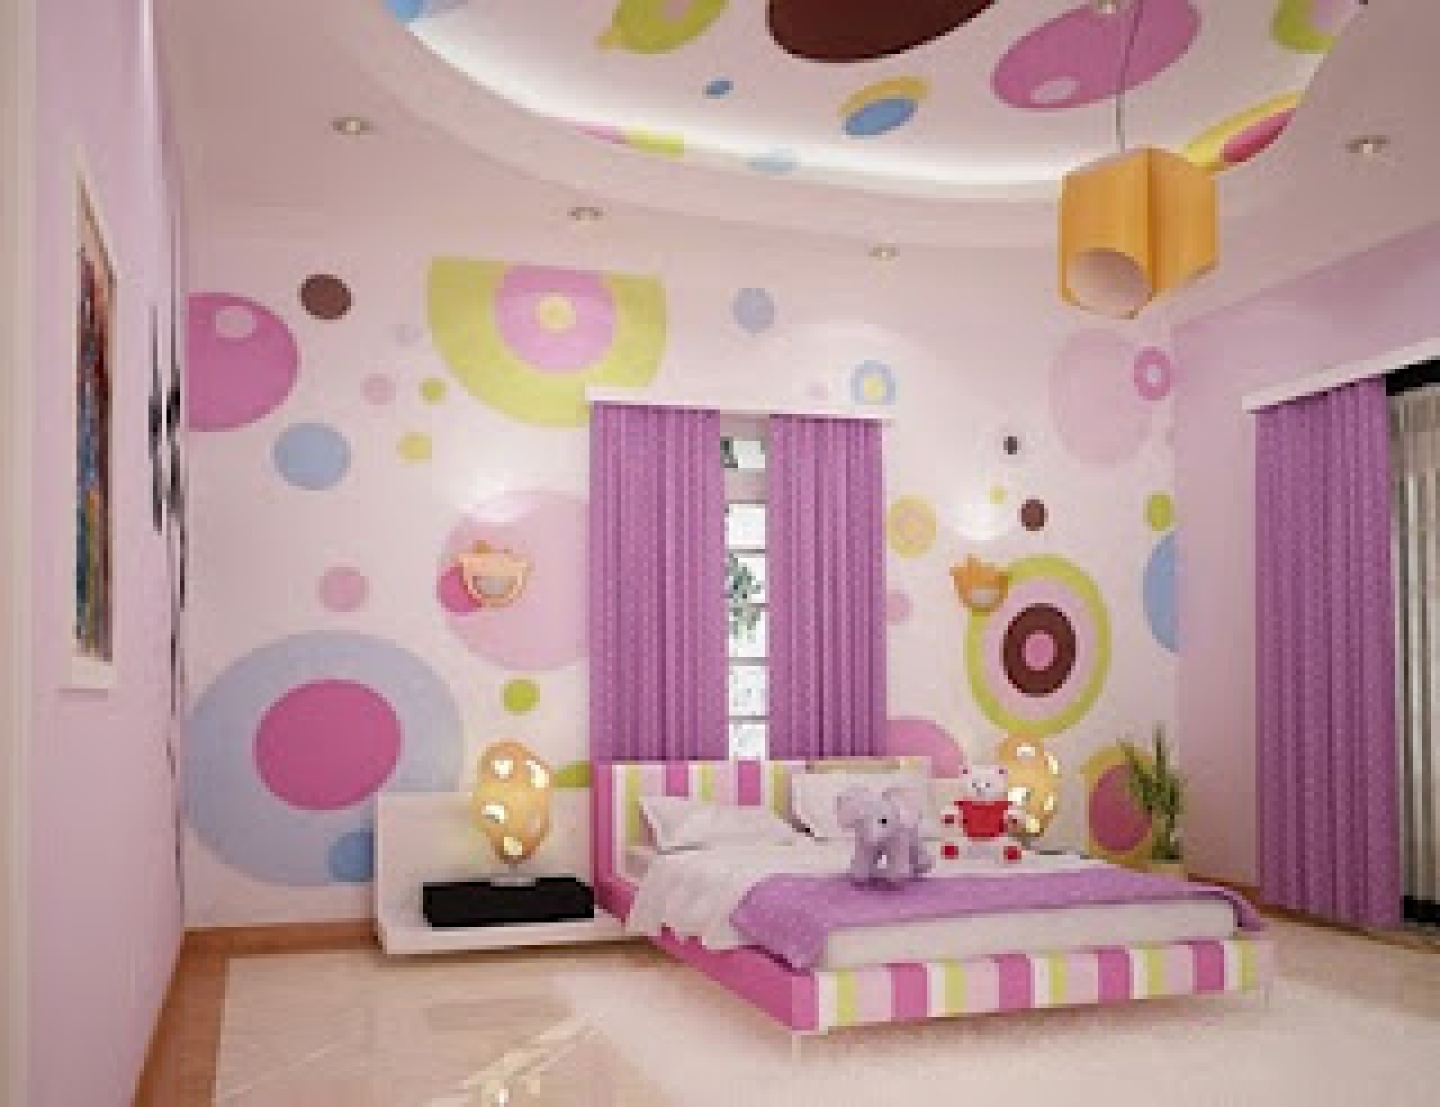 Polcadote Purple Girl Bedroom Design (Image 7 of 10)